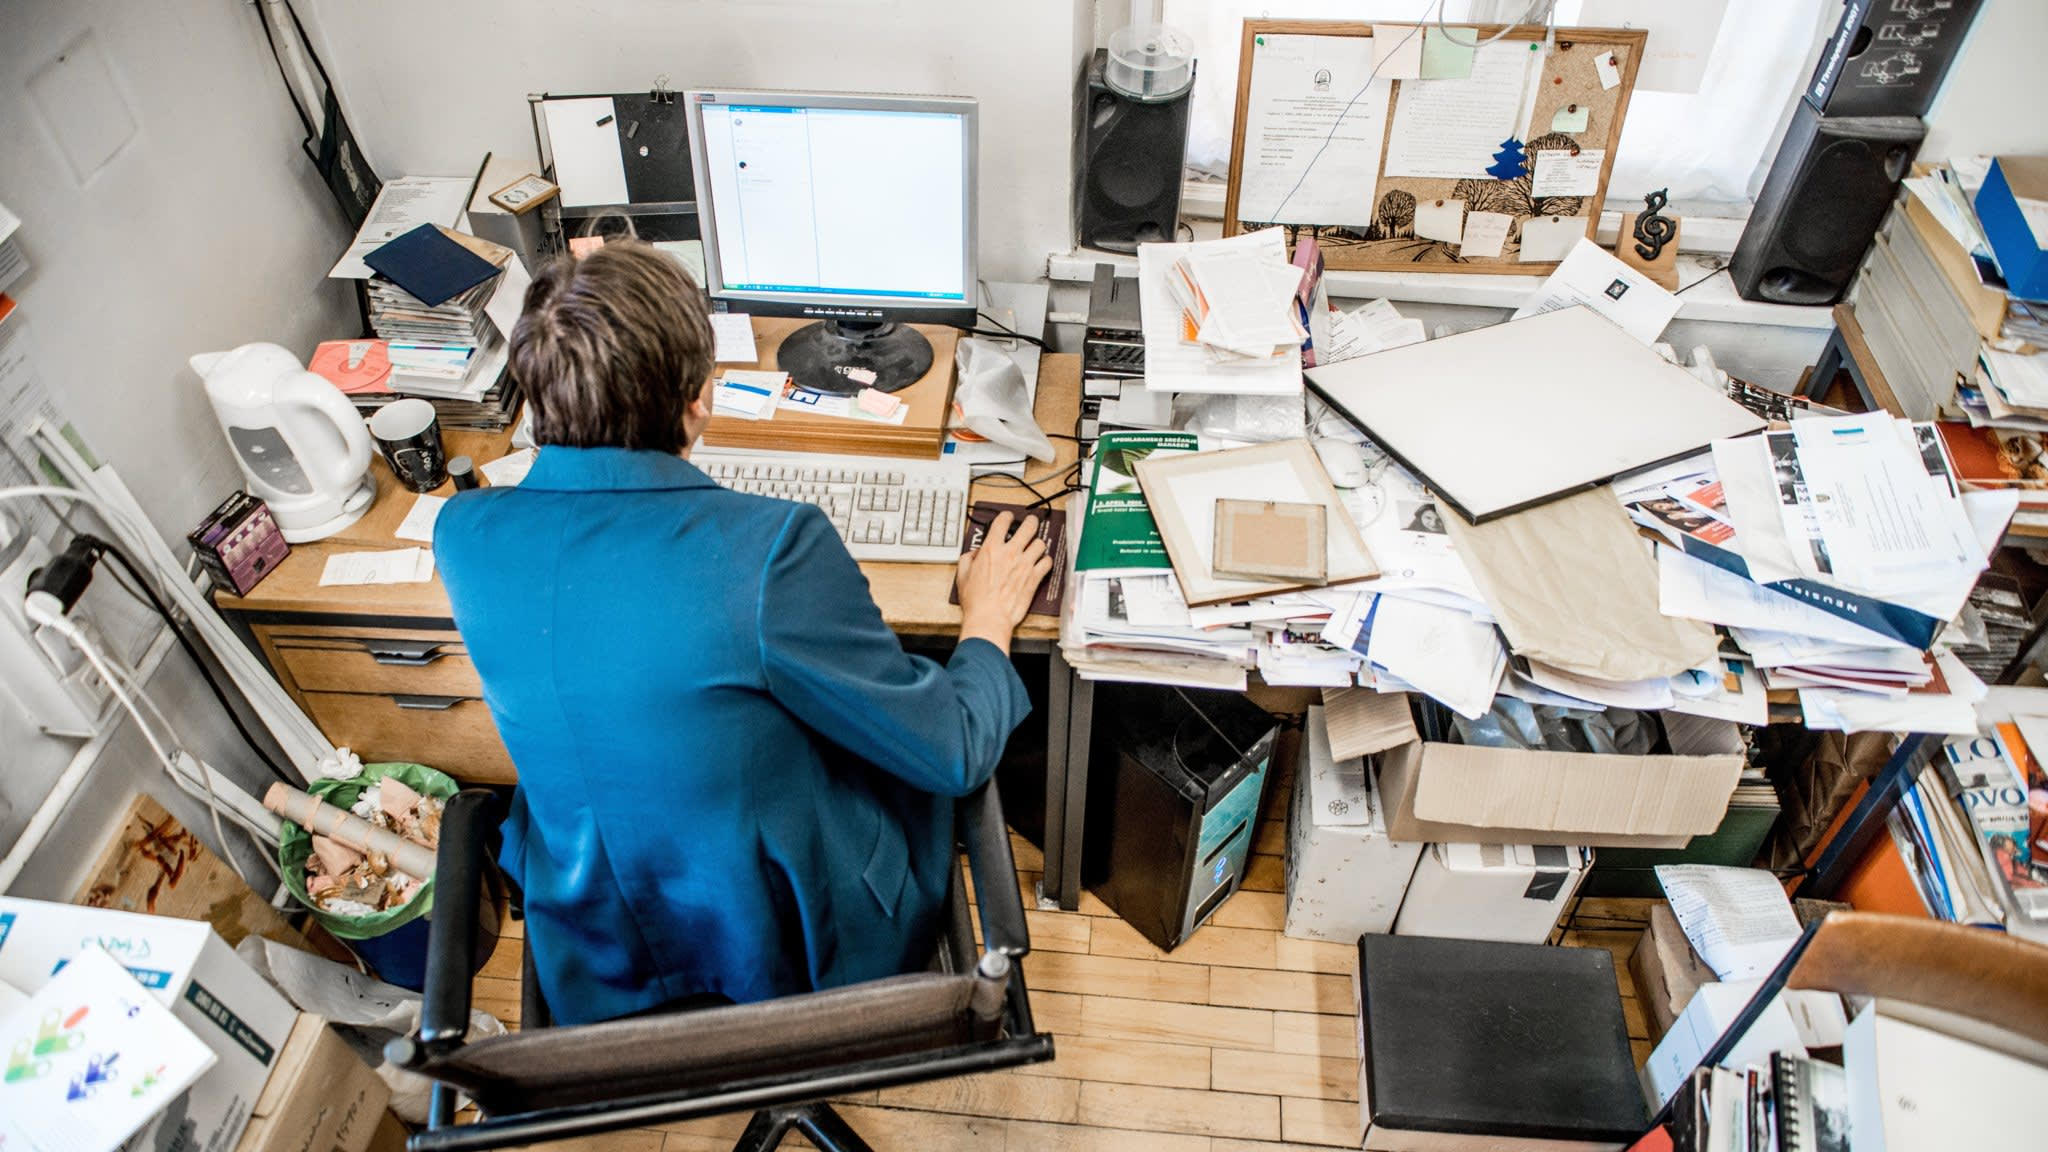 Messy desks and benign neglect allow new ideas to grow | Financial Times